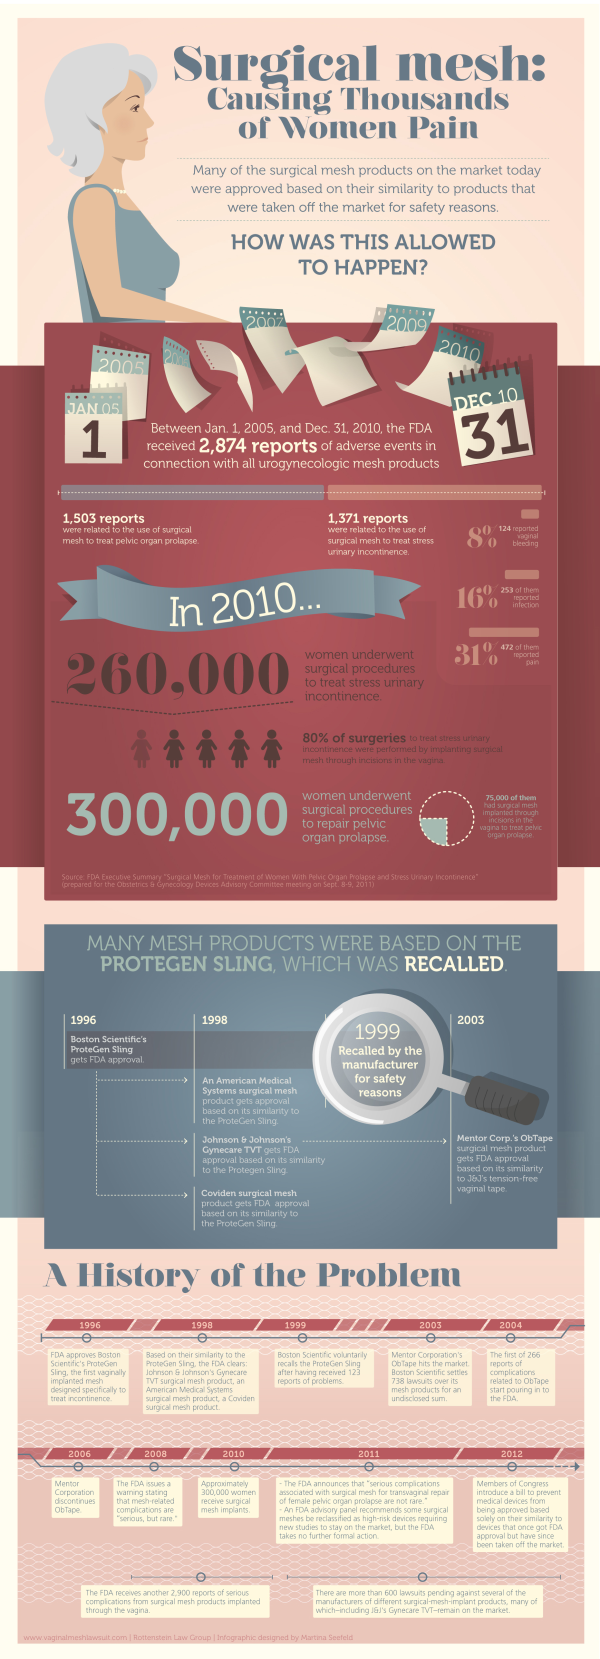 transvaginal mesh lawsuit infographic resized 600